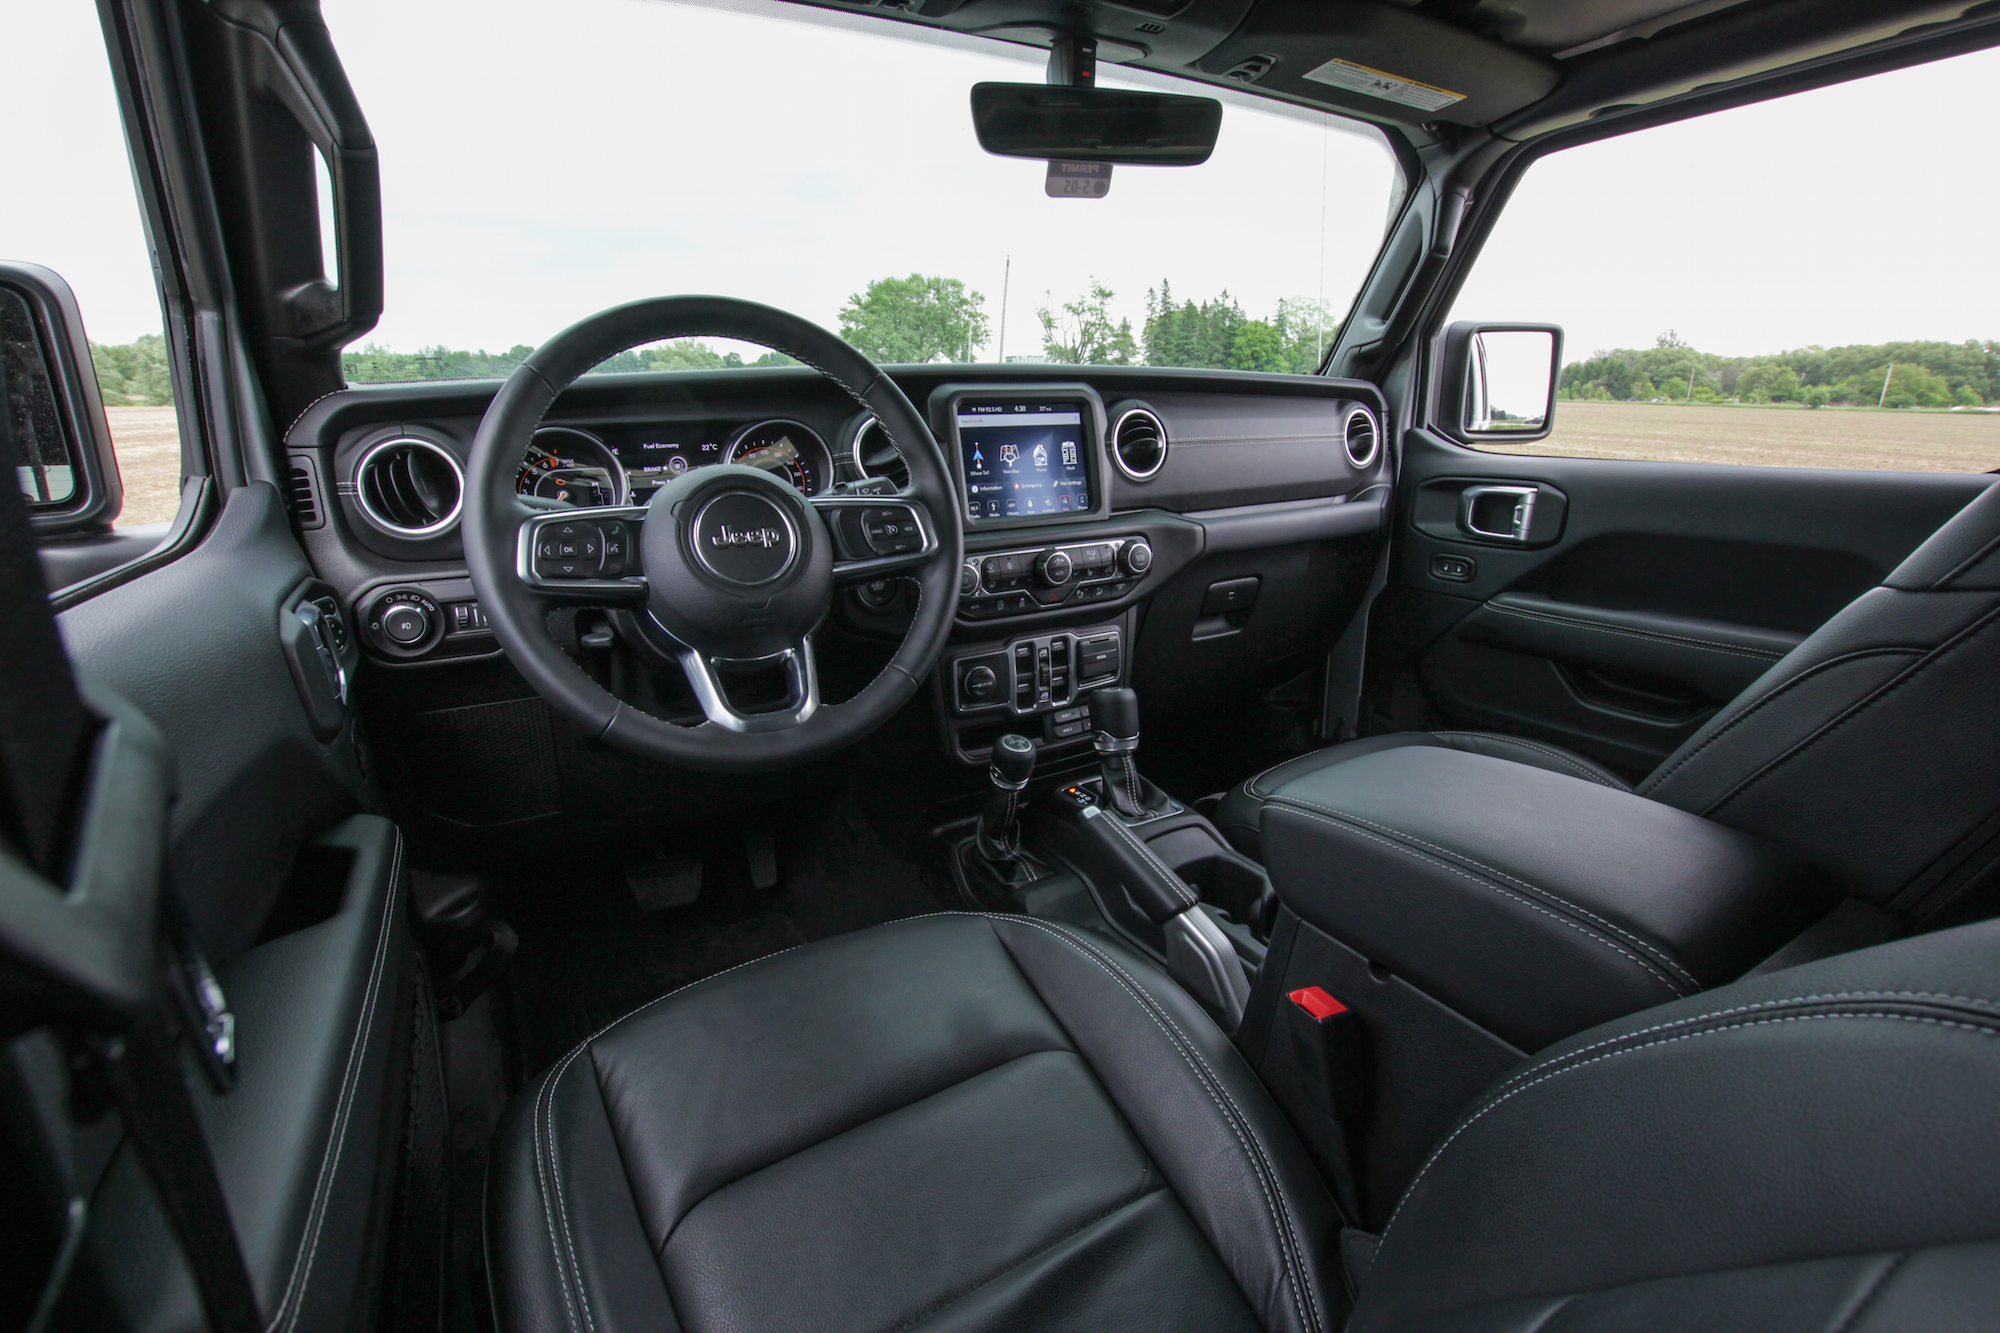 Review 2018 Jeep Wrangler Sahara Unlimited Car Interior